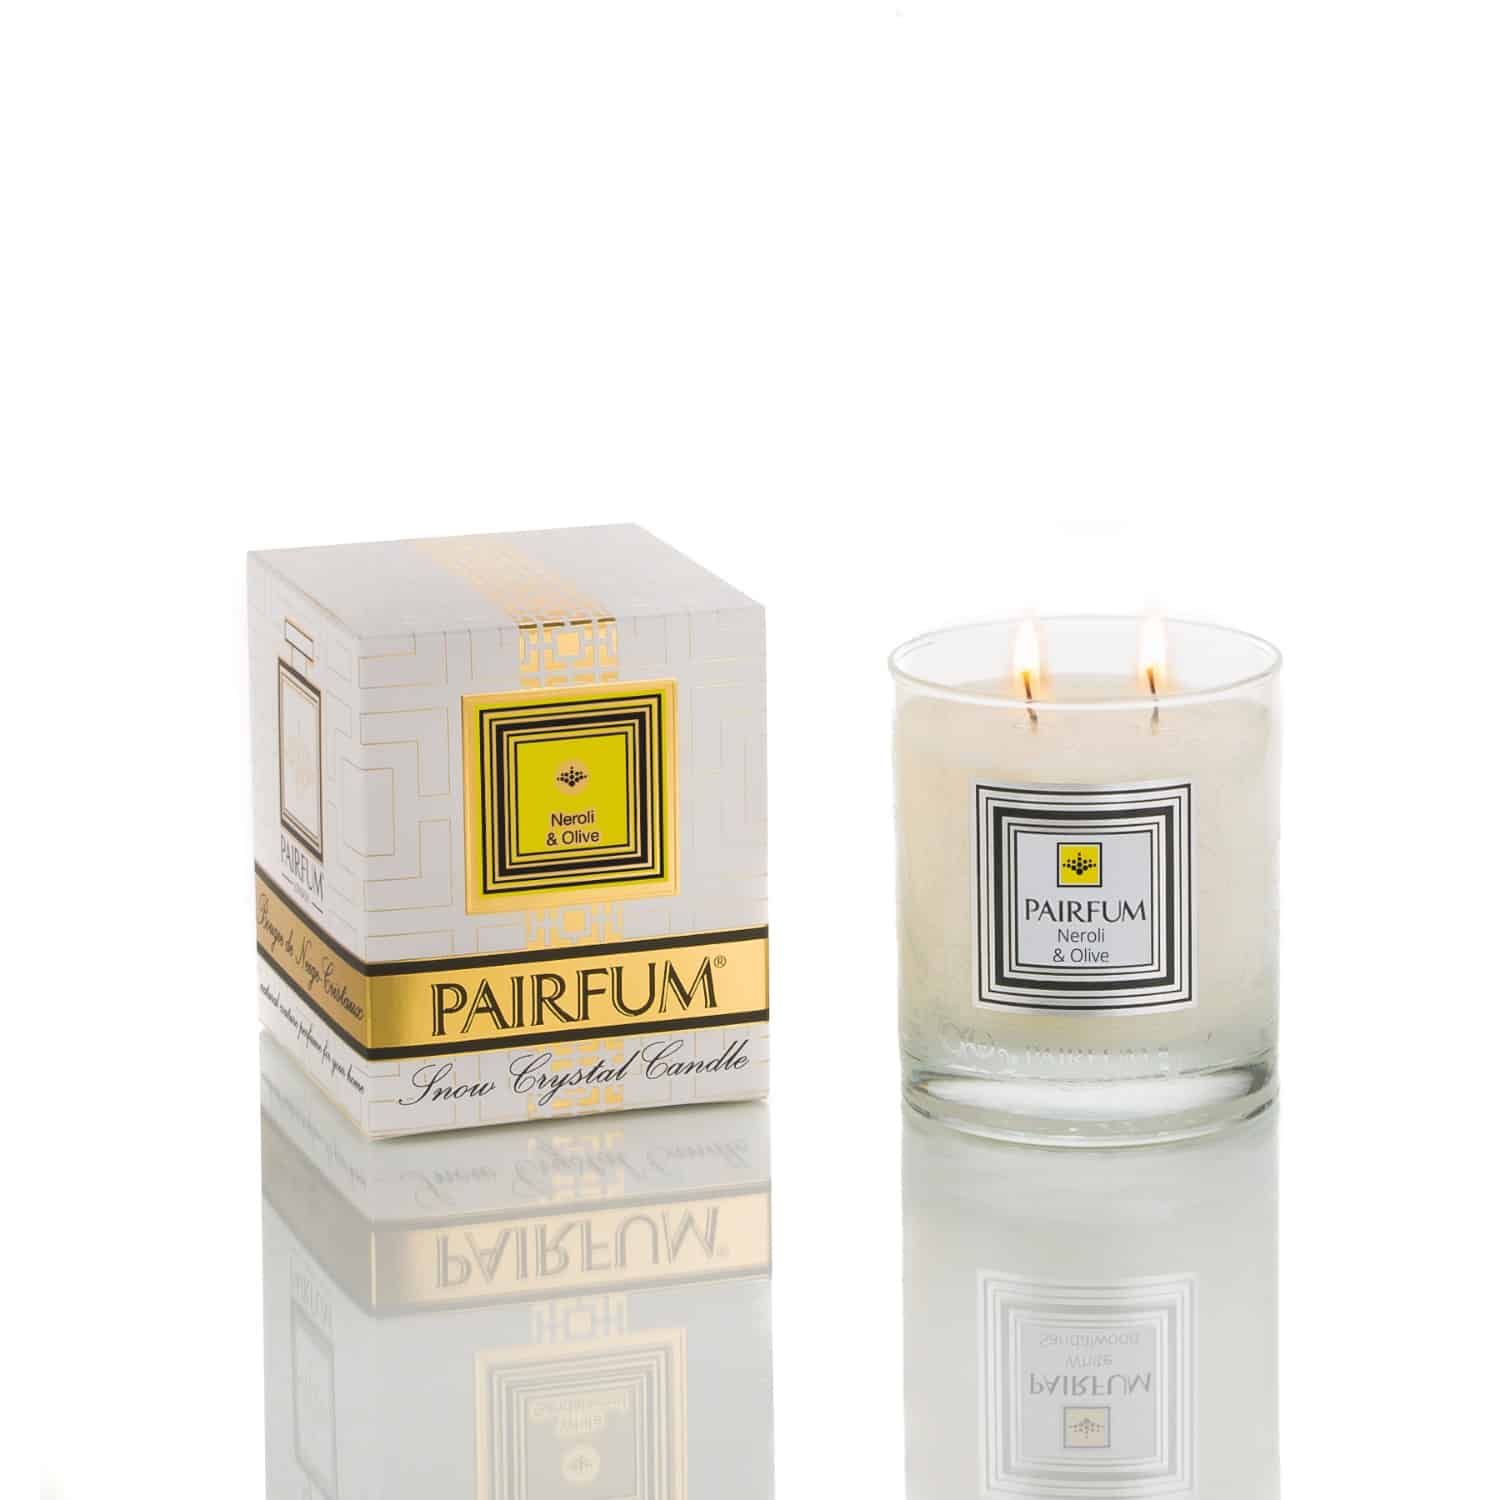 Pairfum Snow Crystal Candle Classic Pure Neroli Olive